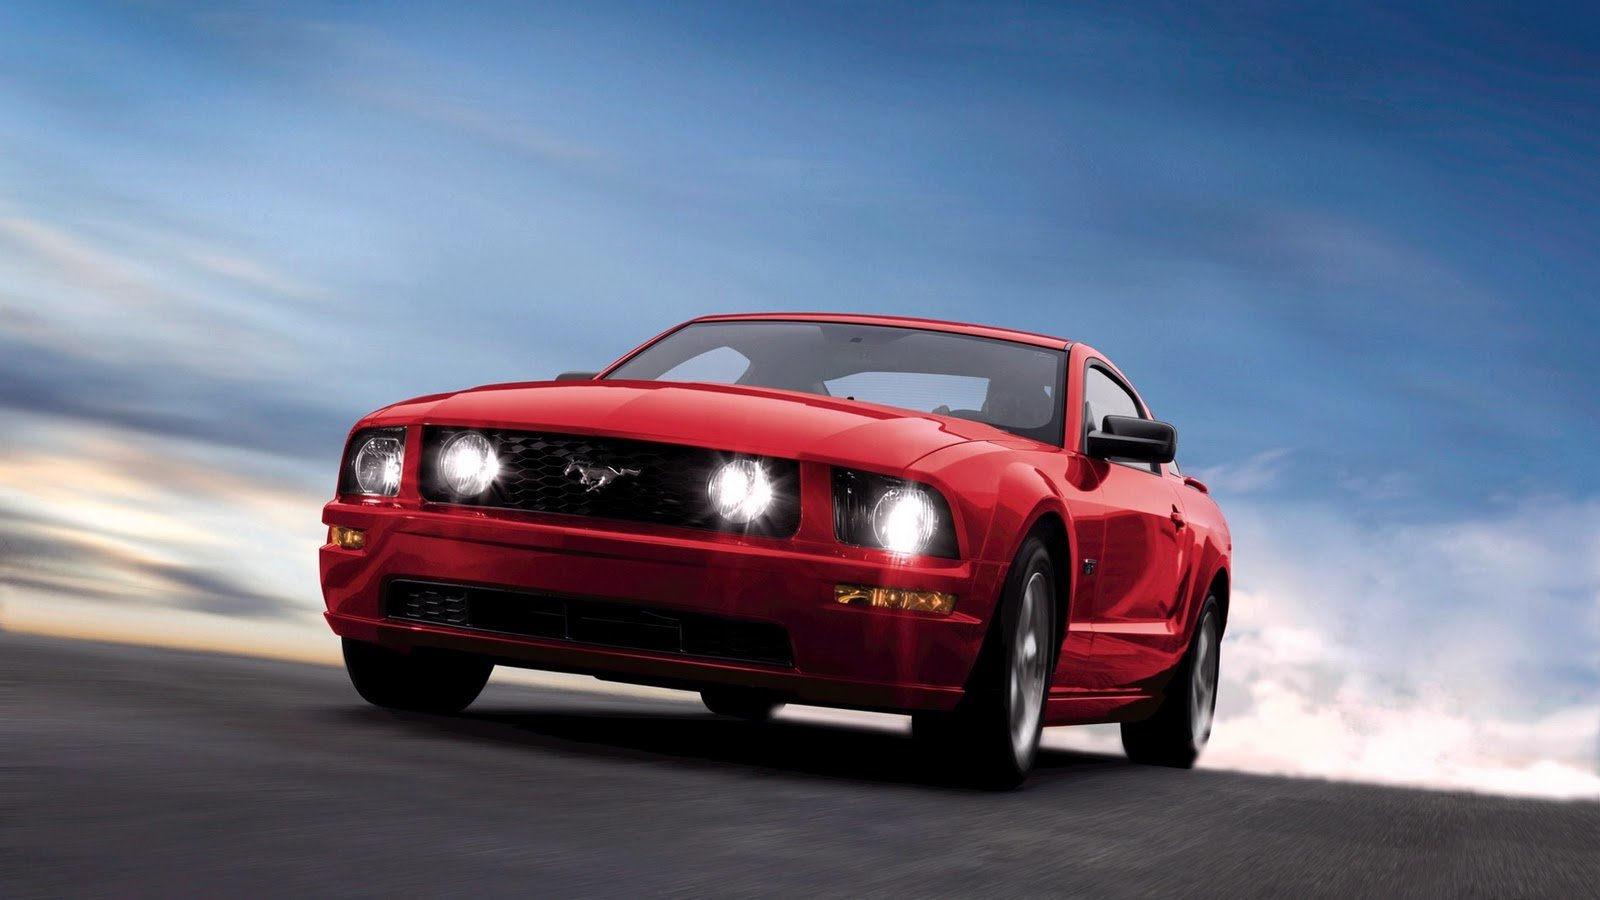 Best Desktop HD Wallpaper   Ford Mustang desktop wallpapers 1600x900